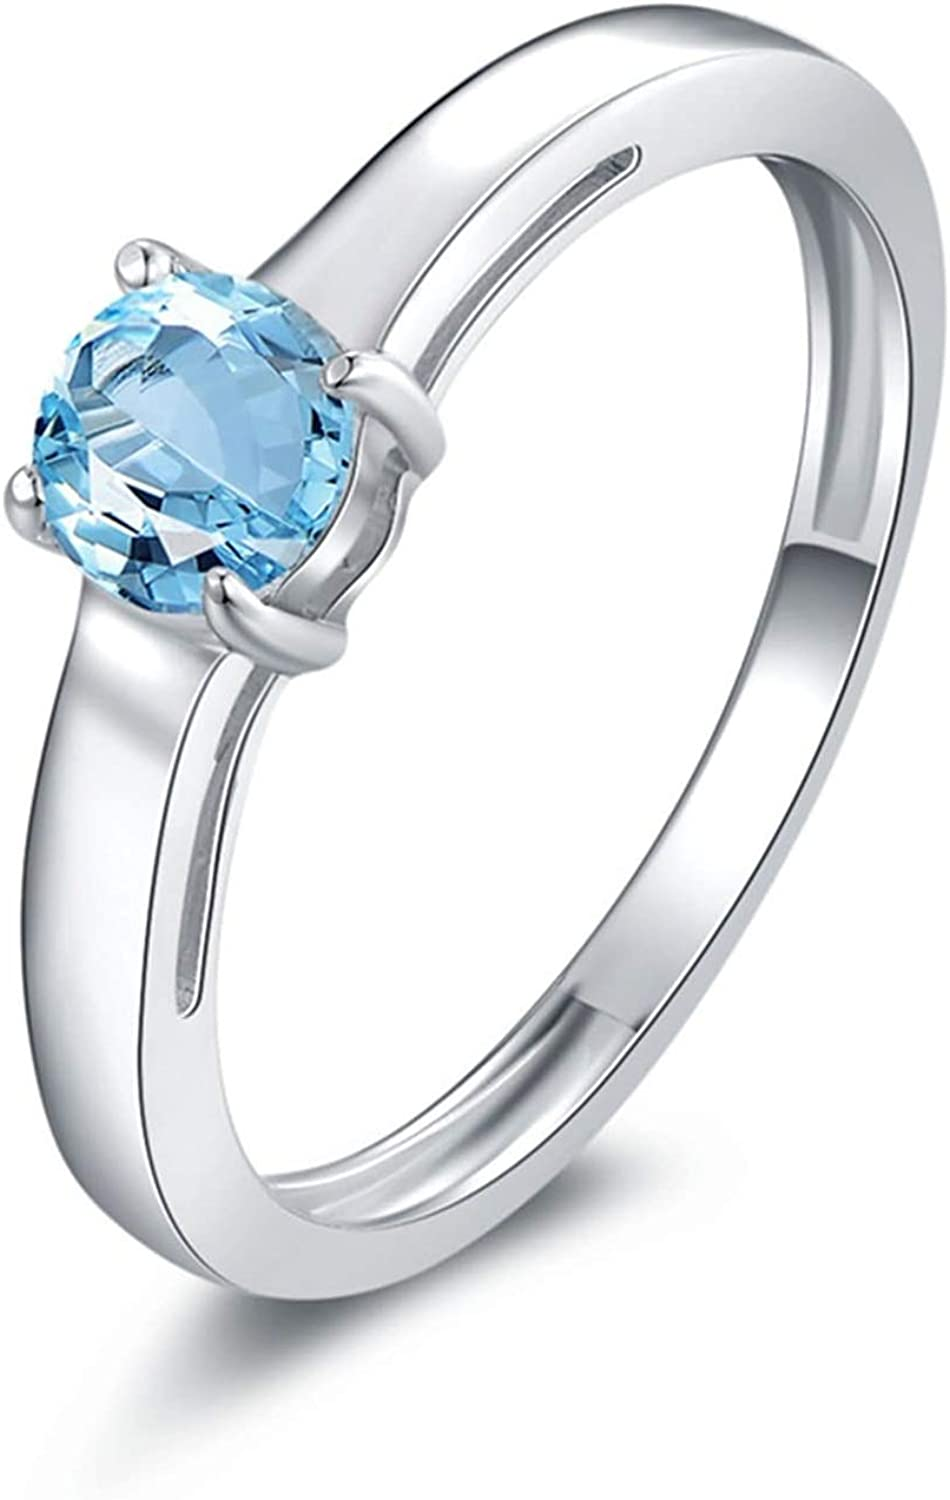 AMDXD Jewellery 925 Sterling Silver Wedding Ring Girls Round Cut Topaz Round Rings